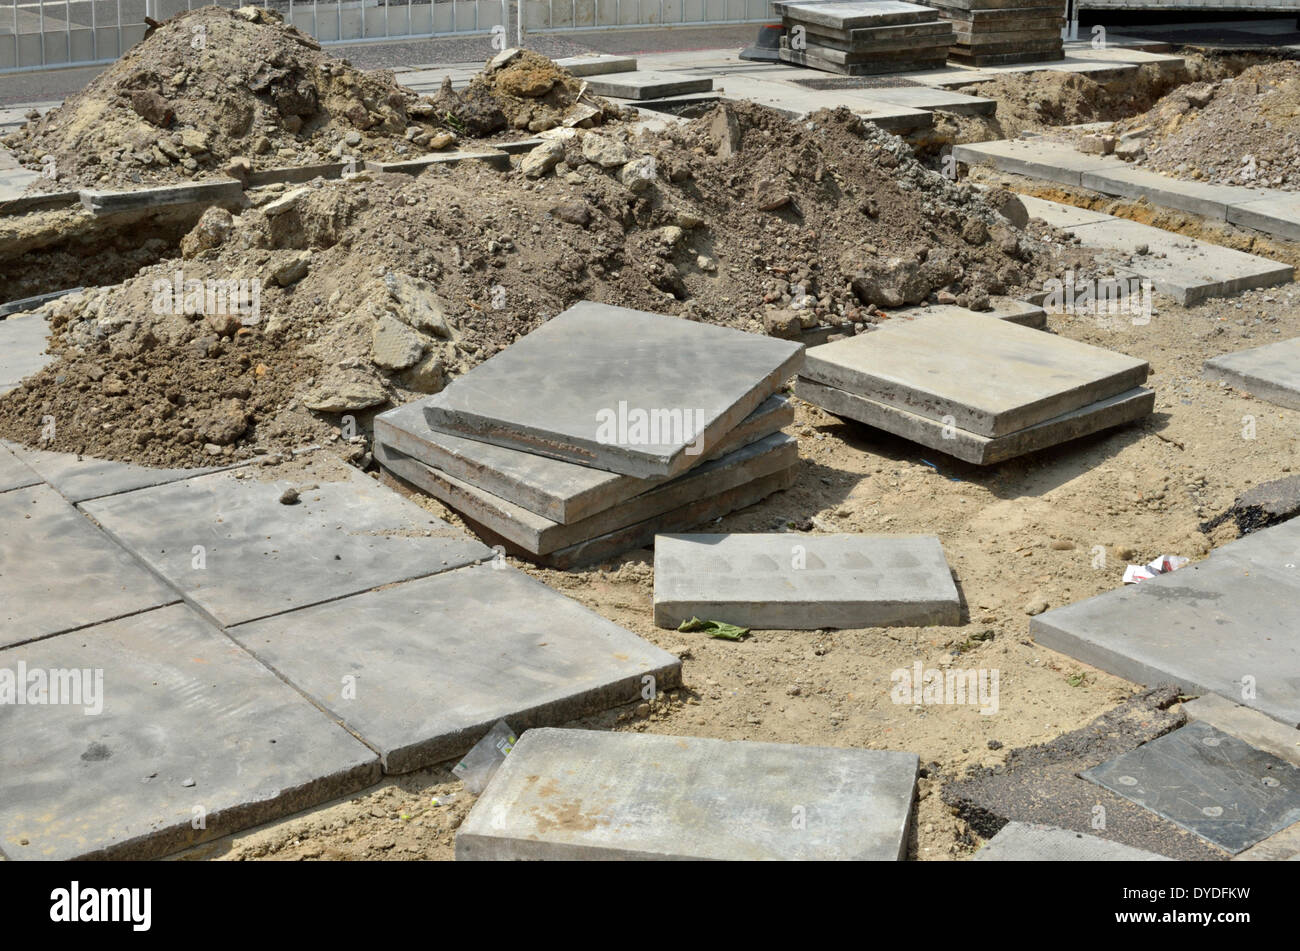 Work in progress laying a new pavement. - Stock Image